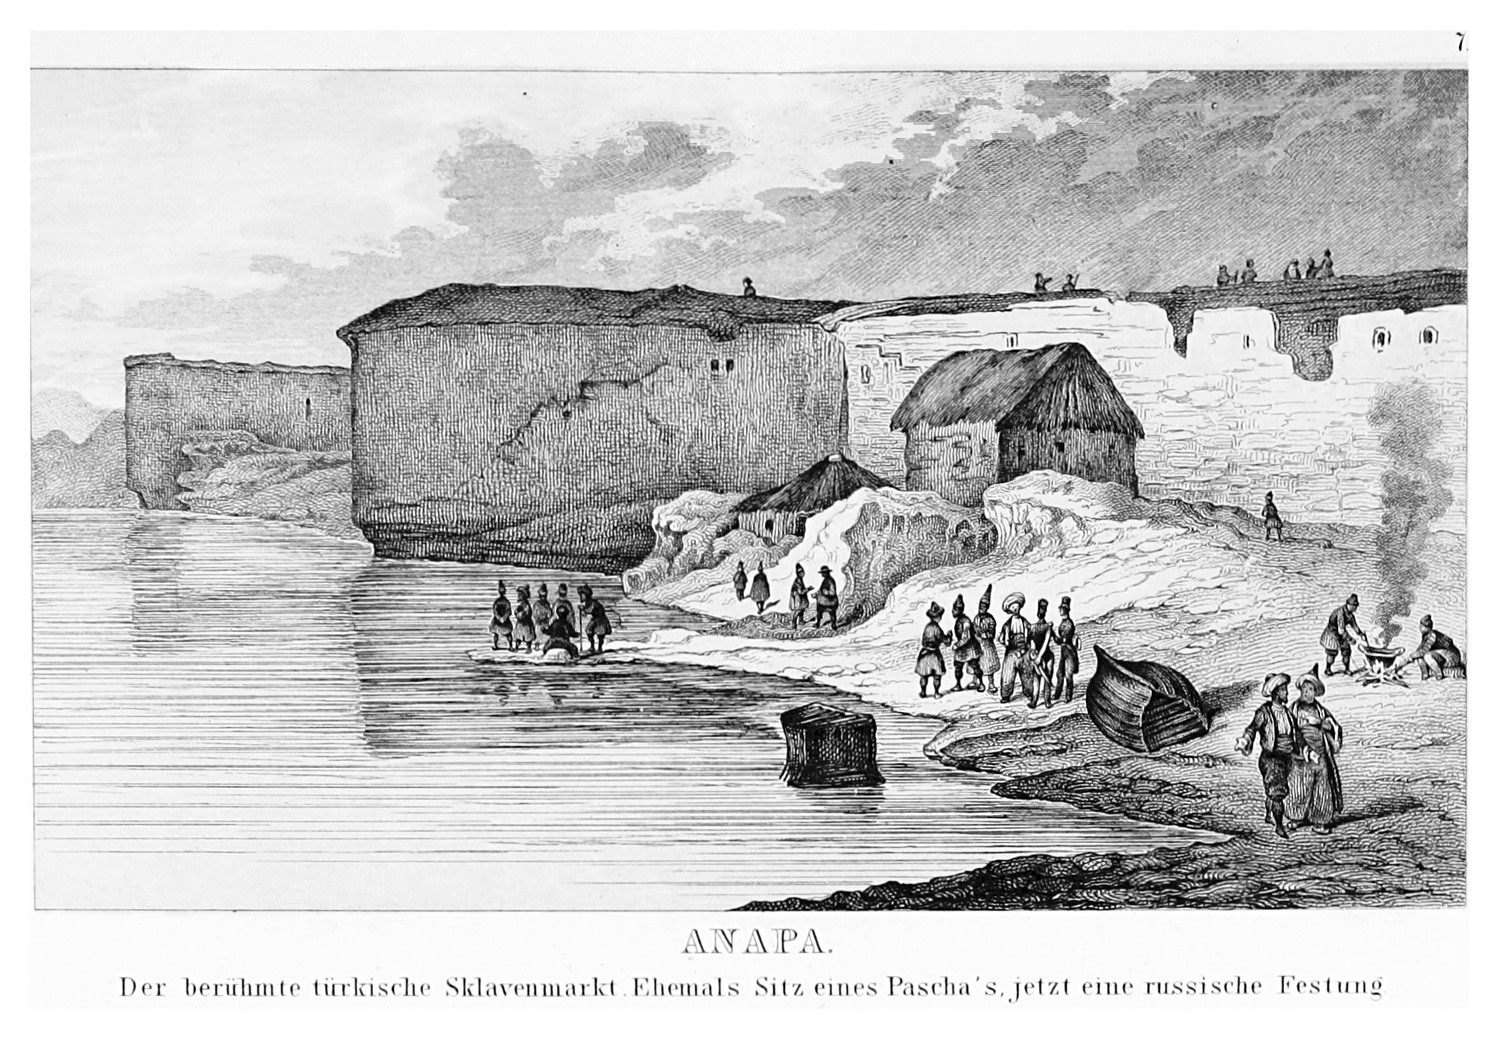 The Turkish fortress Anapa was known as a huge slave market